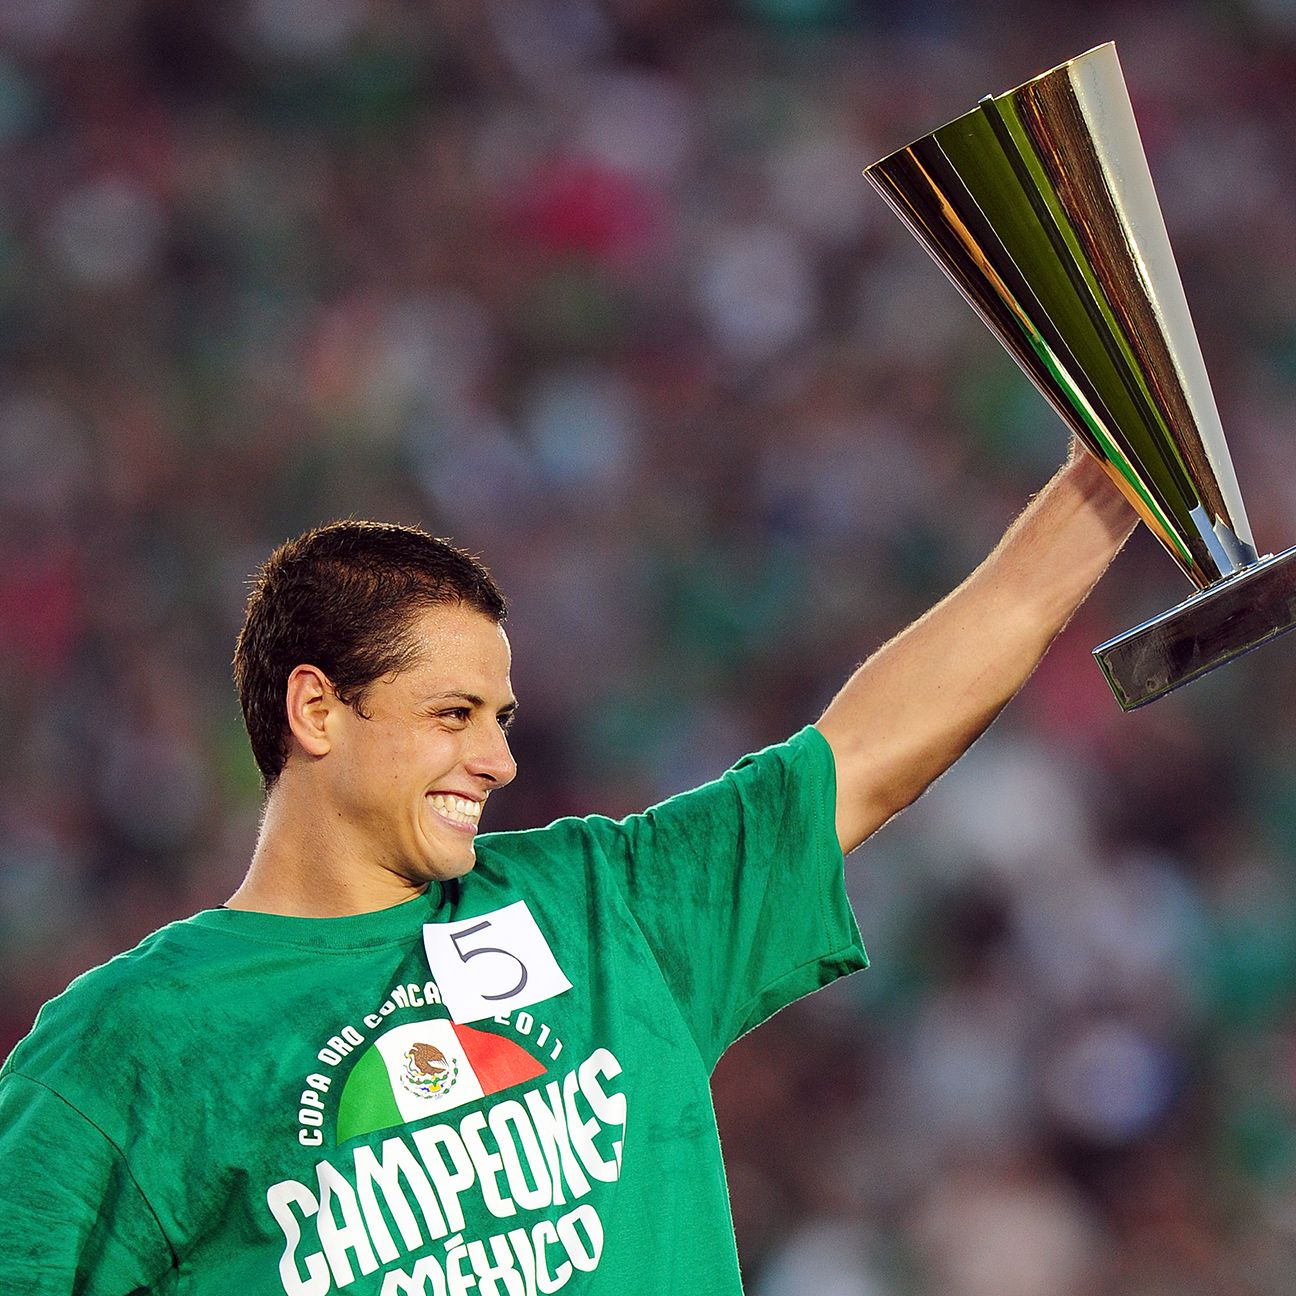 Mexico last claimed the CONCACAF Gold Cup in 2011, defeating the United States 4-2 in the final.